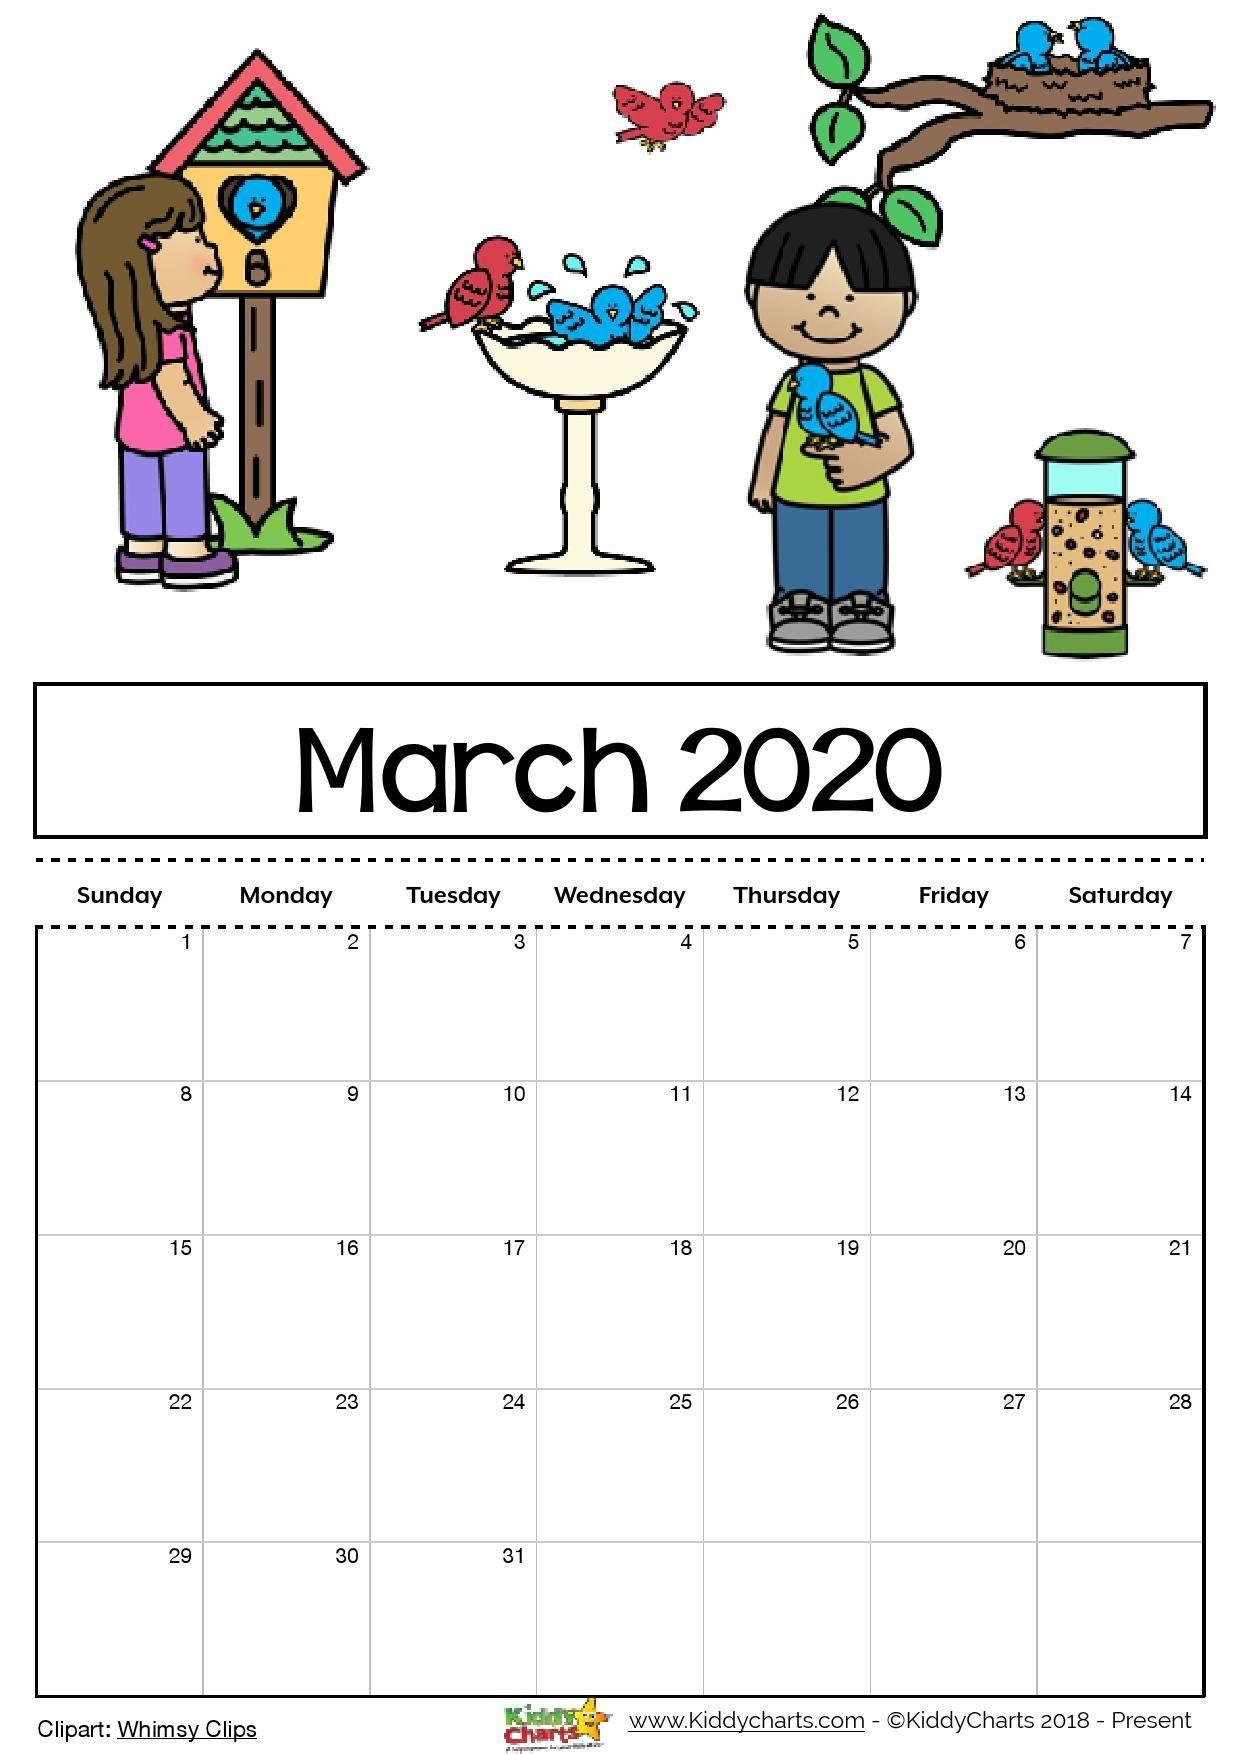 Check Out Our Free Editable 2020 Calendar Available For